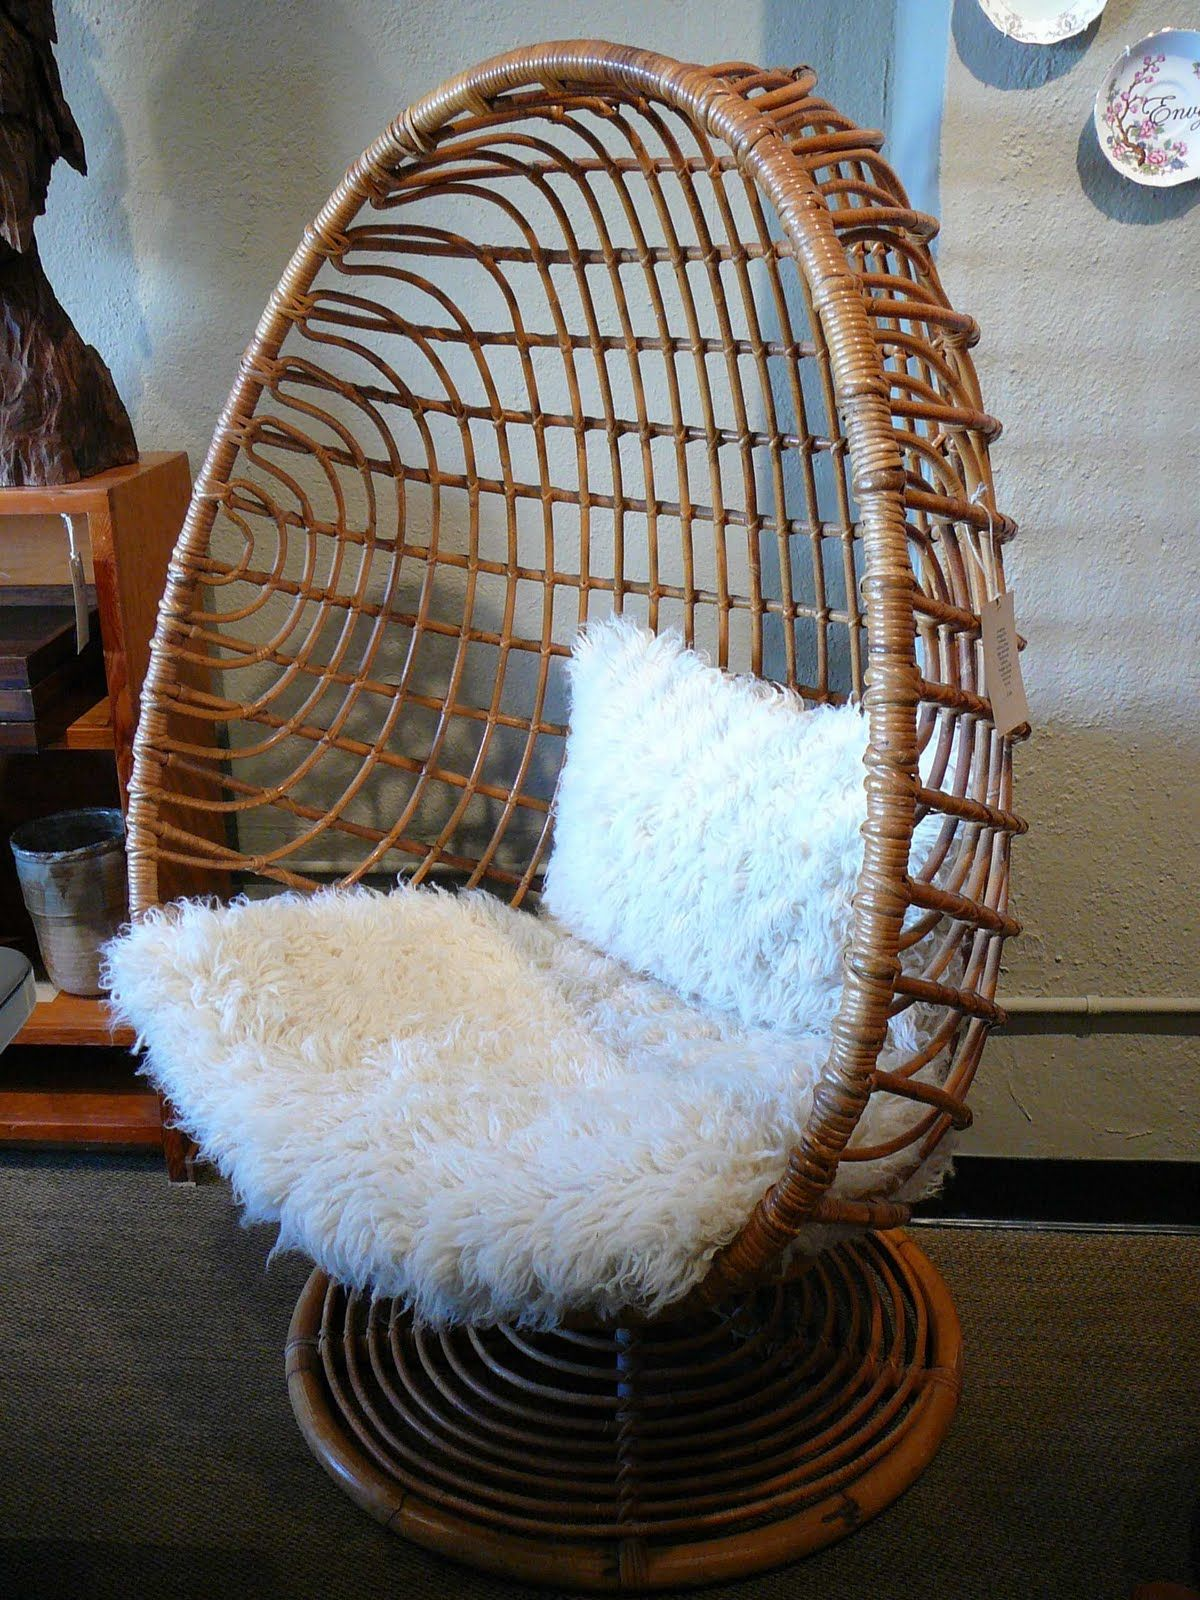 Wicker egg chair - 60 S Egg Chair It Looks Fuzzy White And Wood Rattan Nest Chair Natural